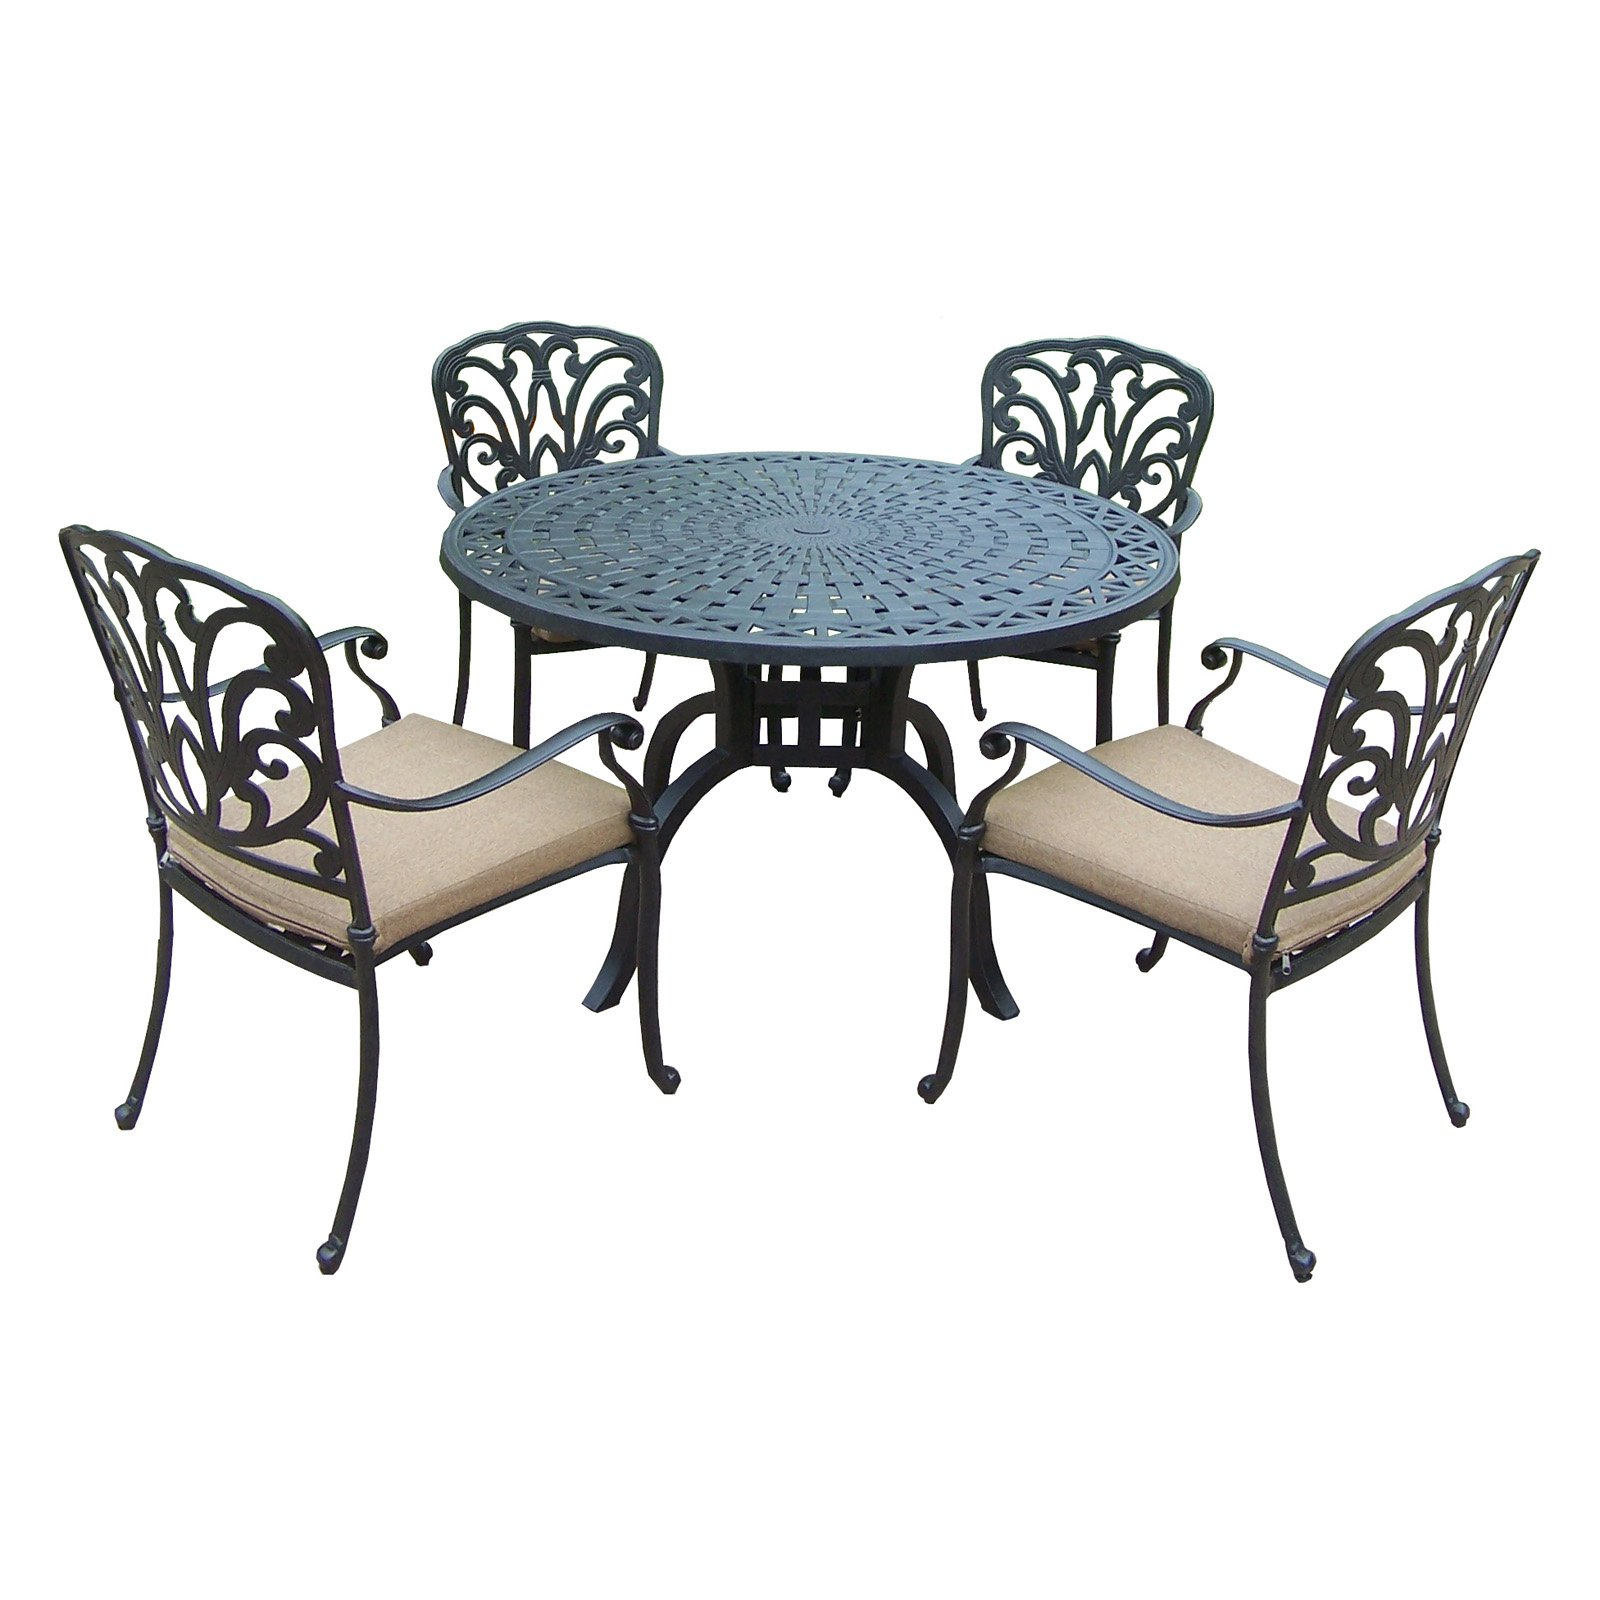 Oakland Living Hampton 48 in. Patio Dining Set